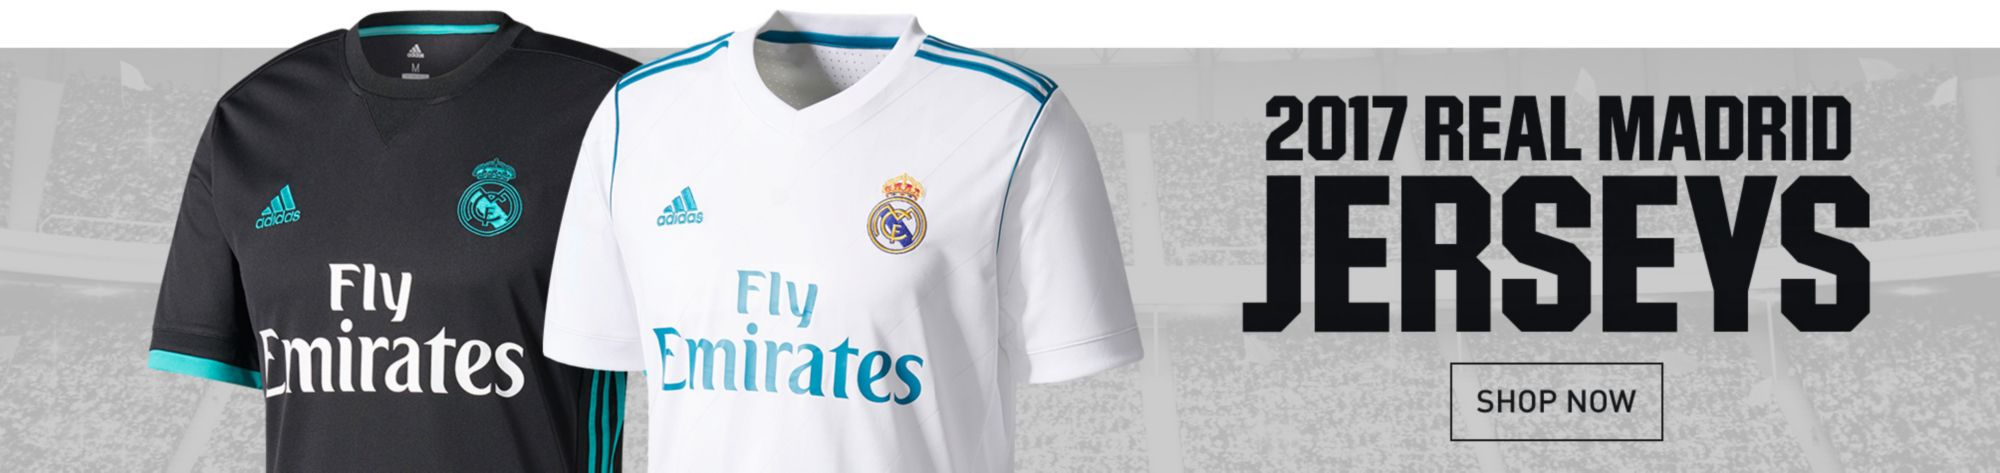 New Real Madrid Jerseys